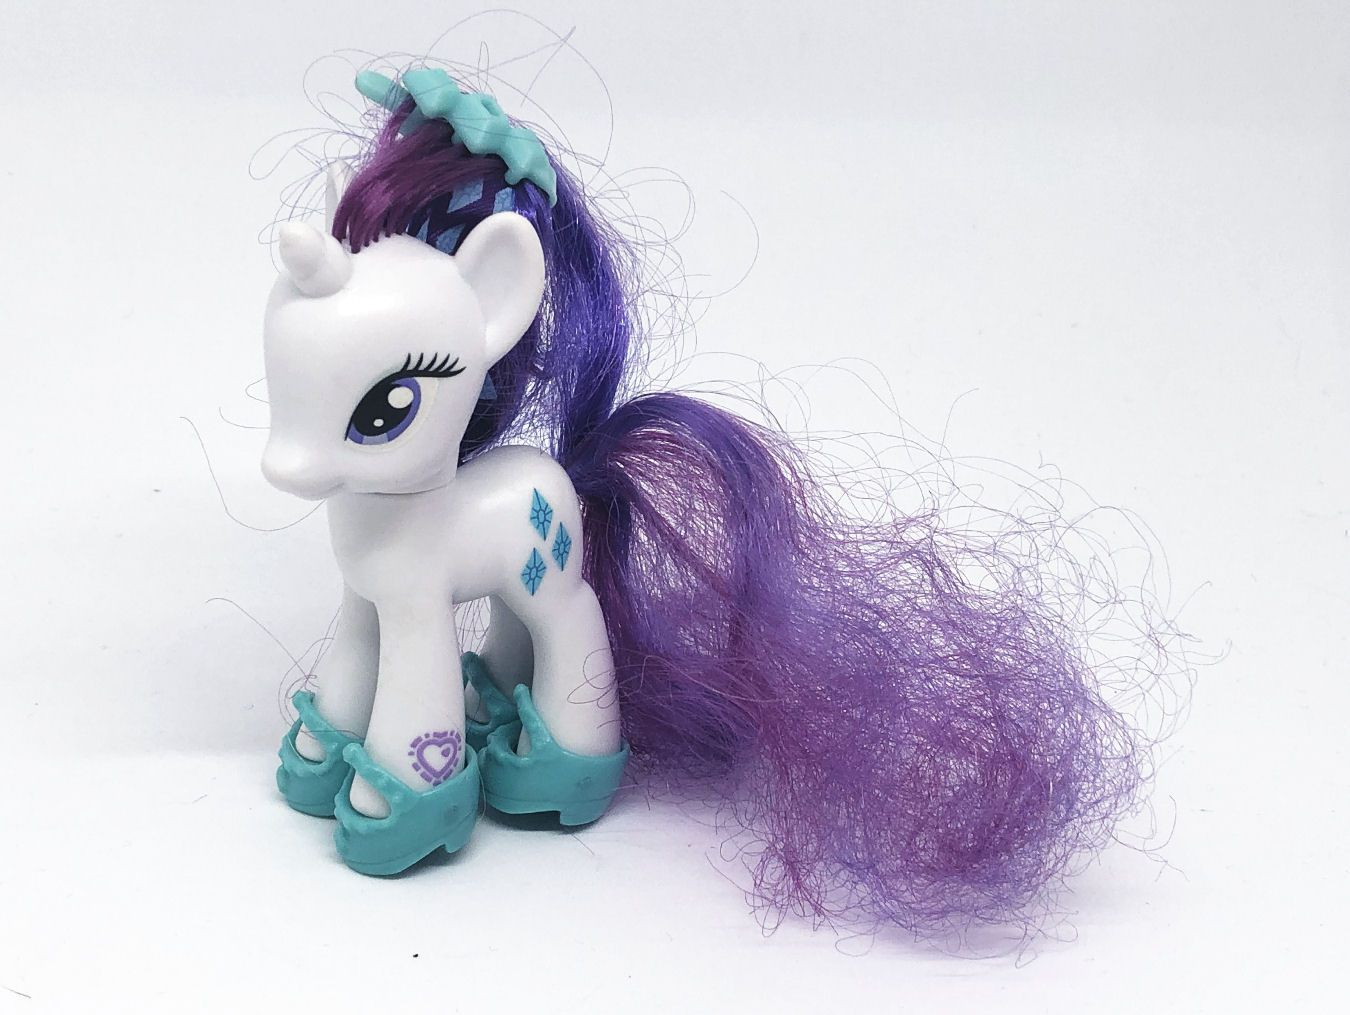 Rarity (Cutie Mark Magic - Magic Ribbon)